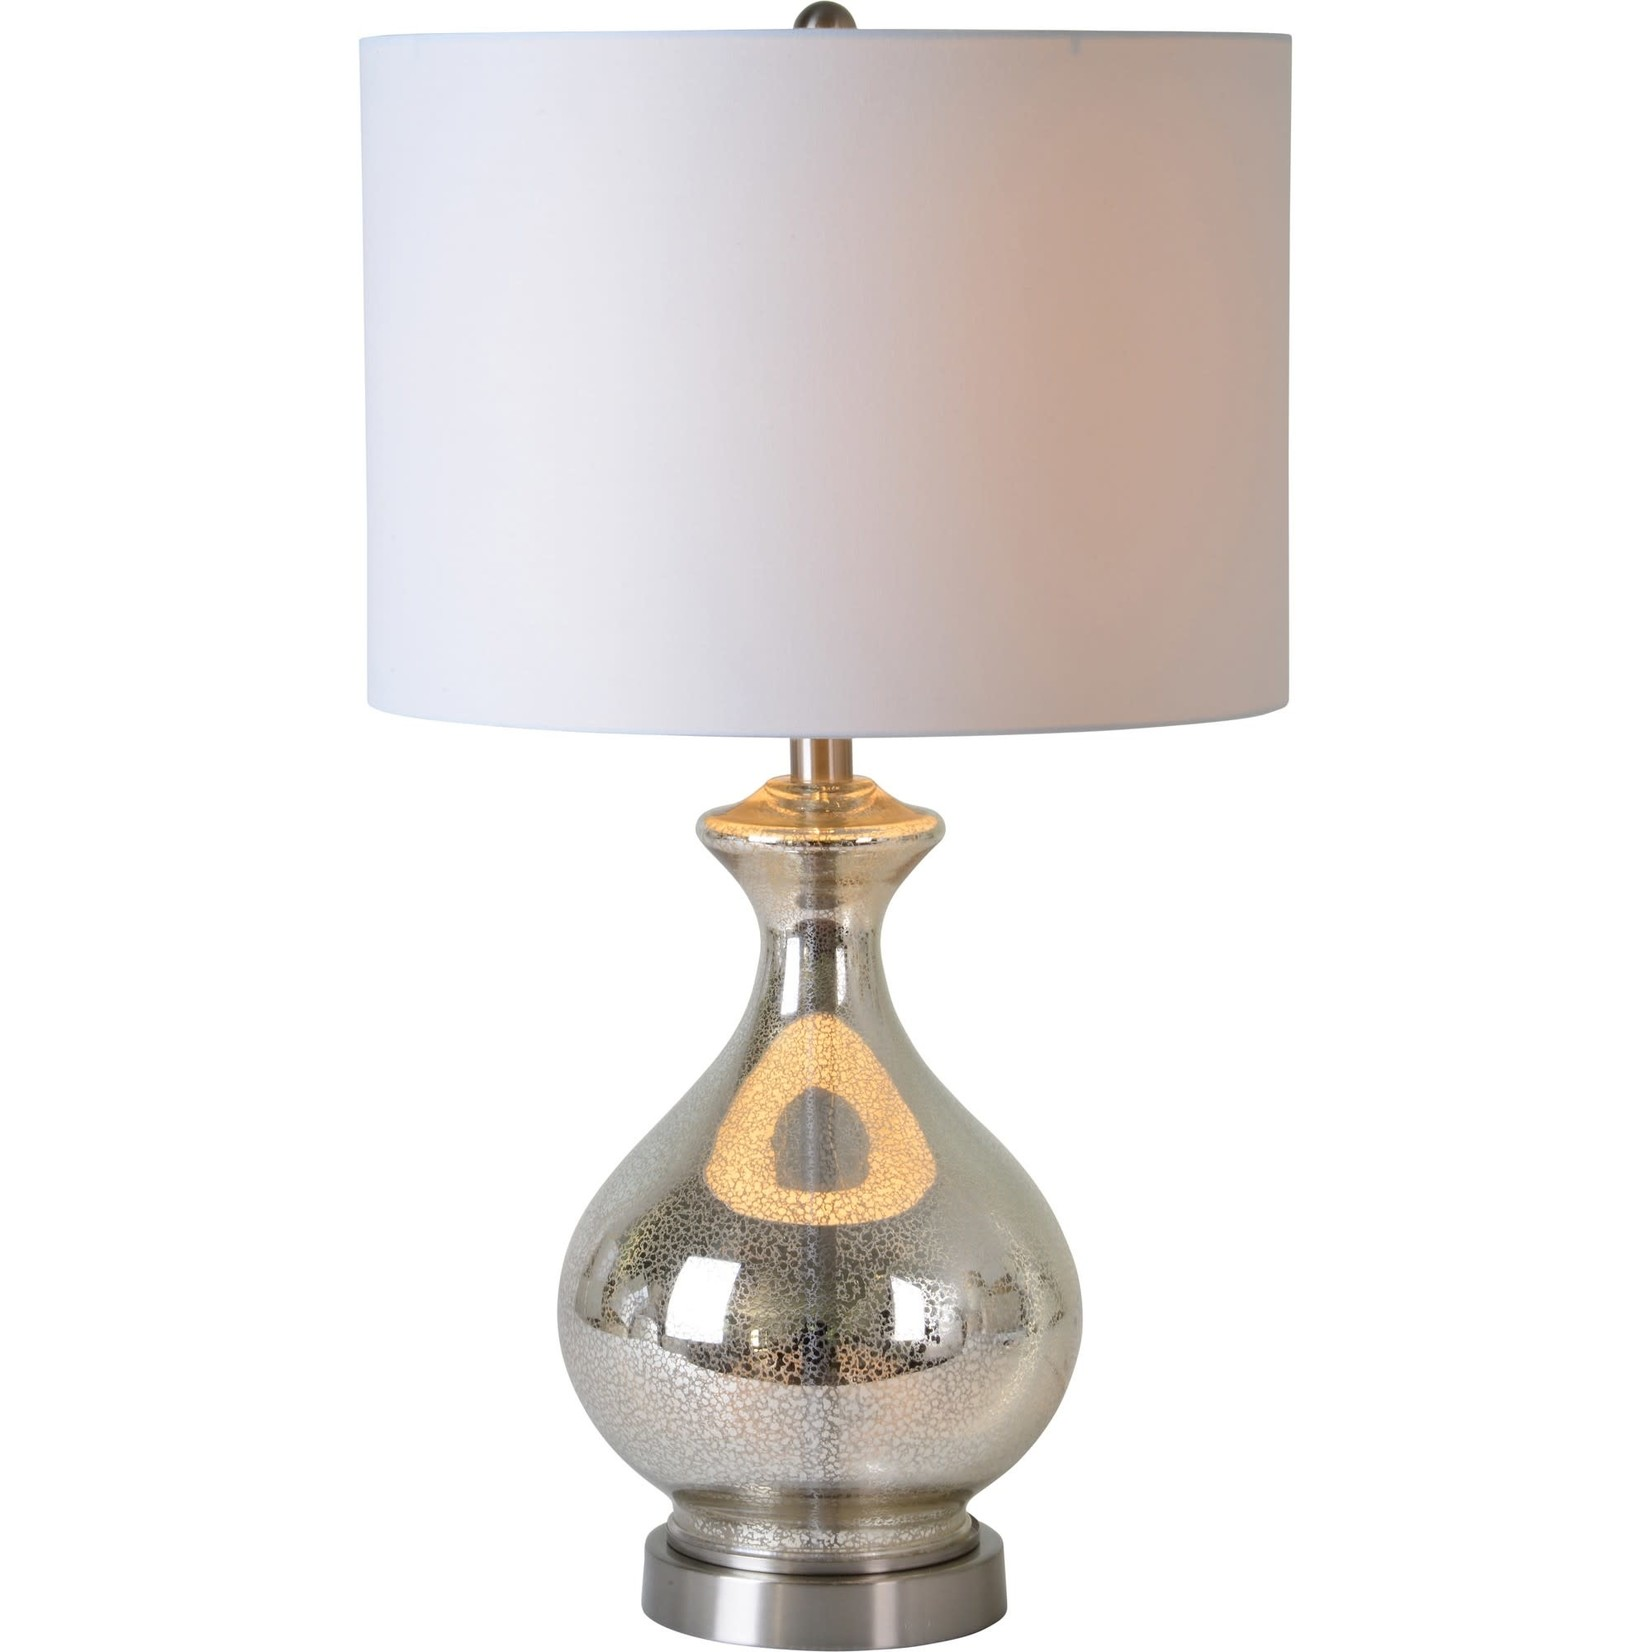 Dulce Table Lamp